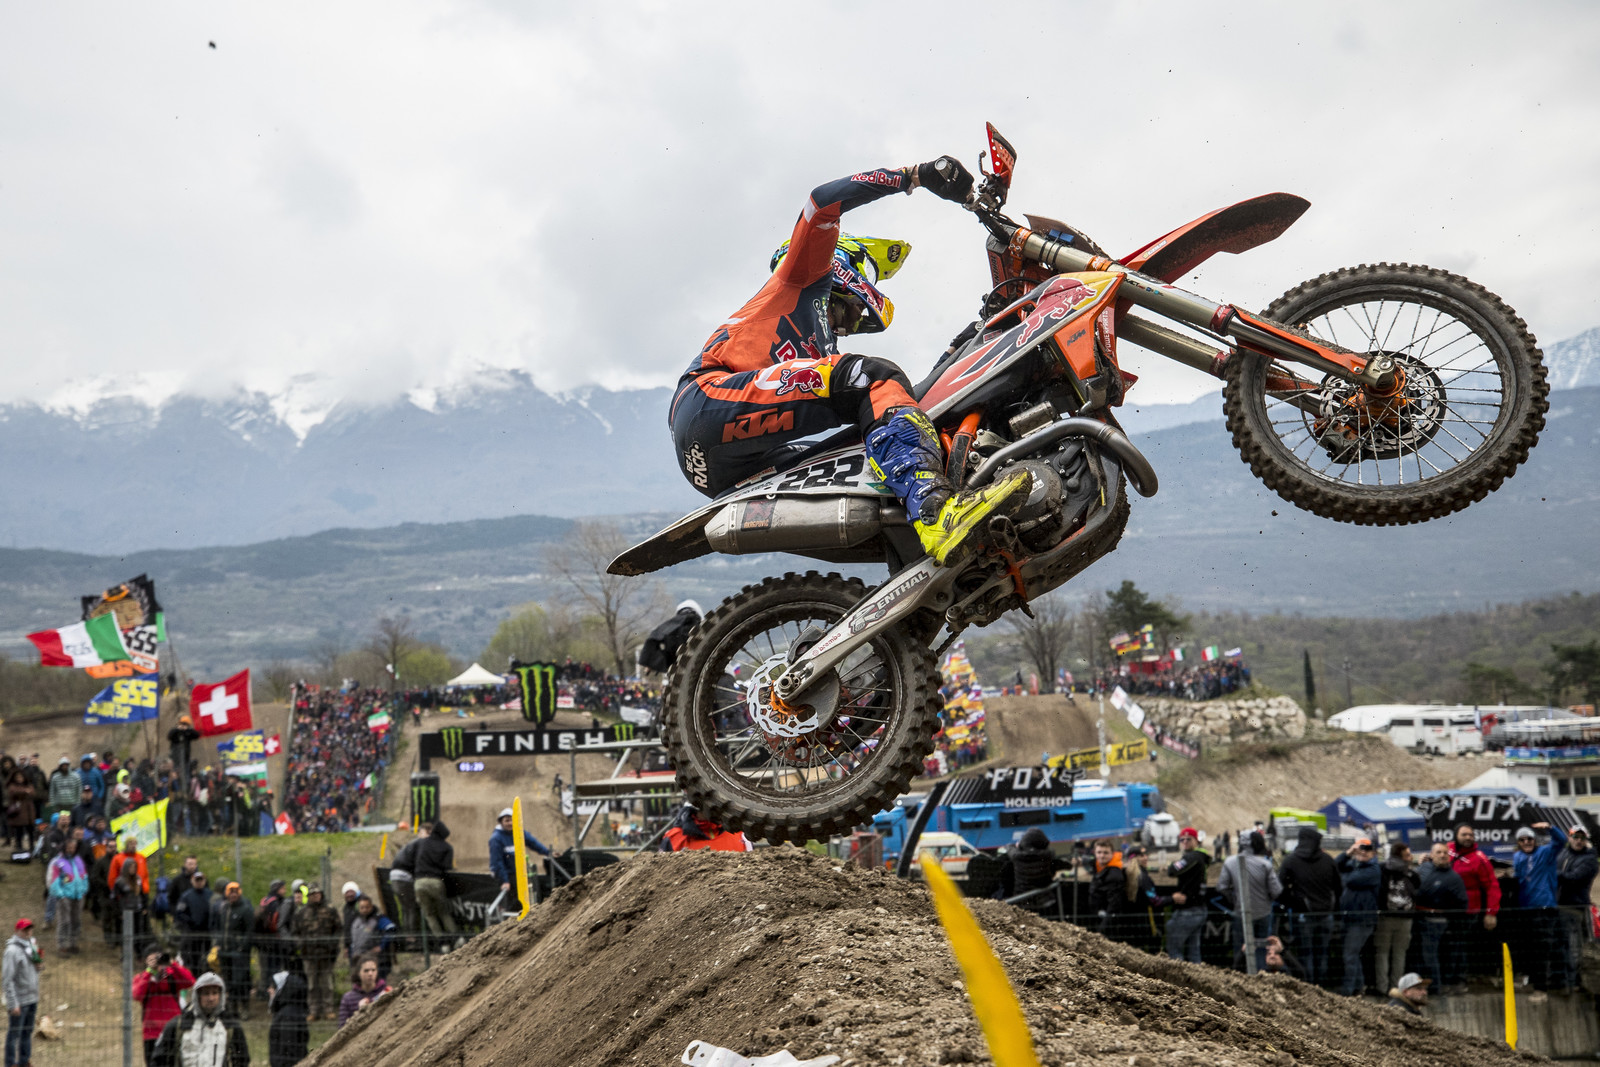 Red Bull KTM's Tony Cairoli had to settle for second overall in his home country with 2 - 2 moto scores. But those numbers alone don't tell the story. Tony and Tim Gajser were on a whole other level trading the lead in each moto.